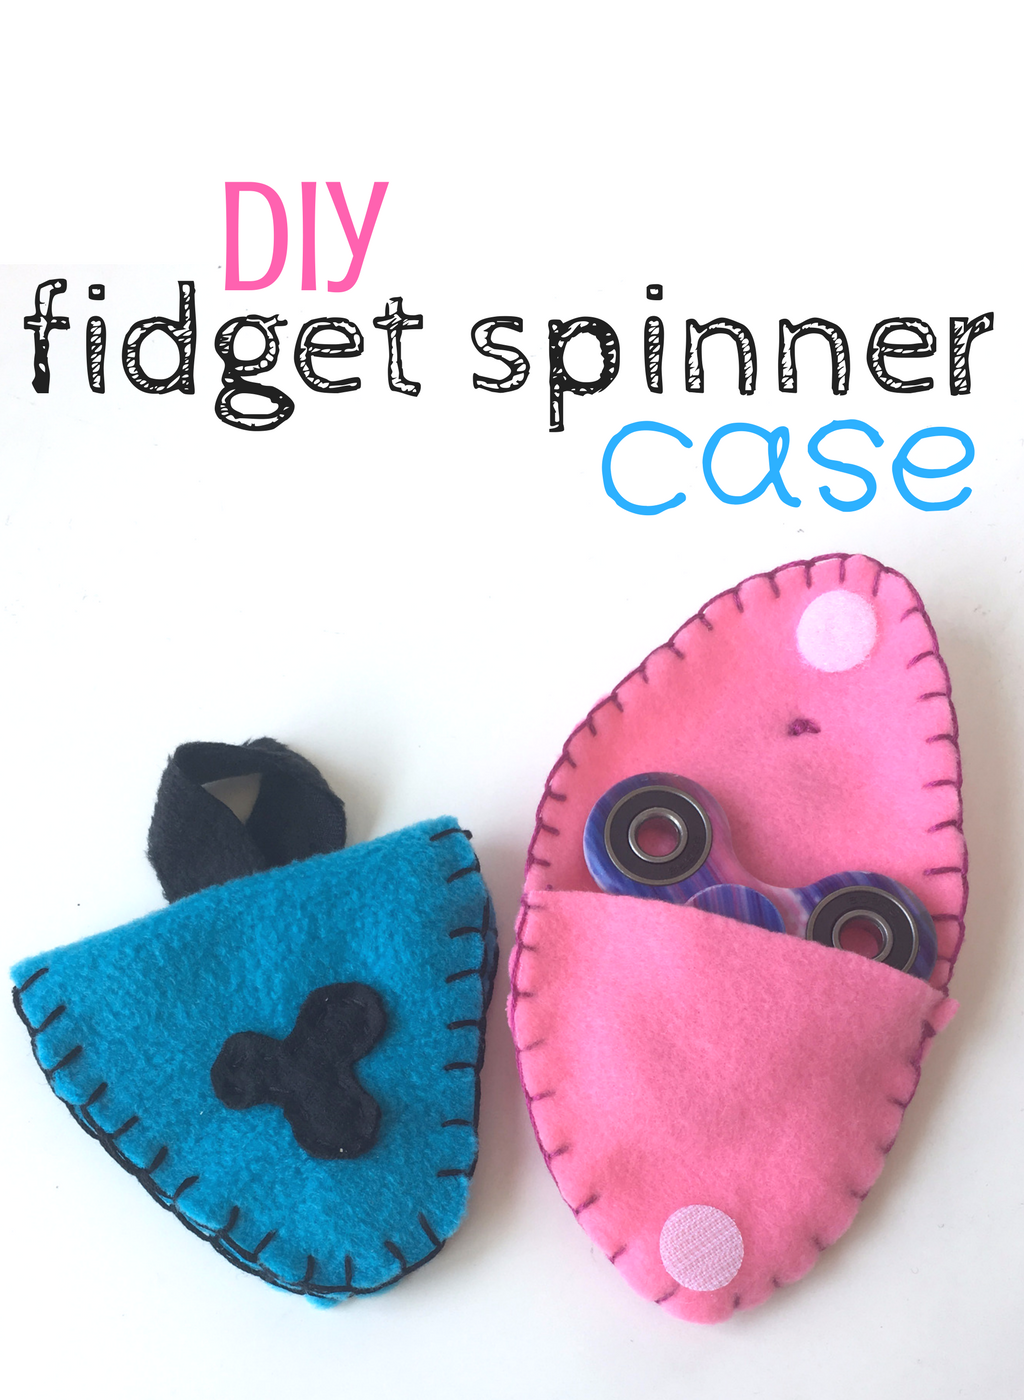 A blue and Pink felt case sewn together to make a Fidget spinner cases